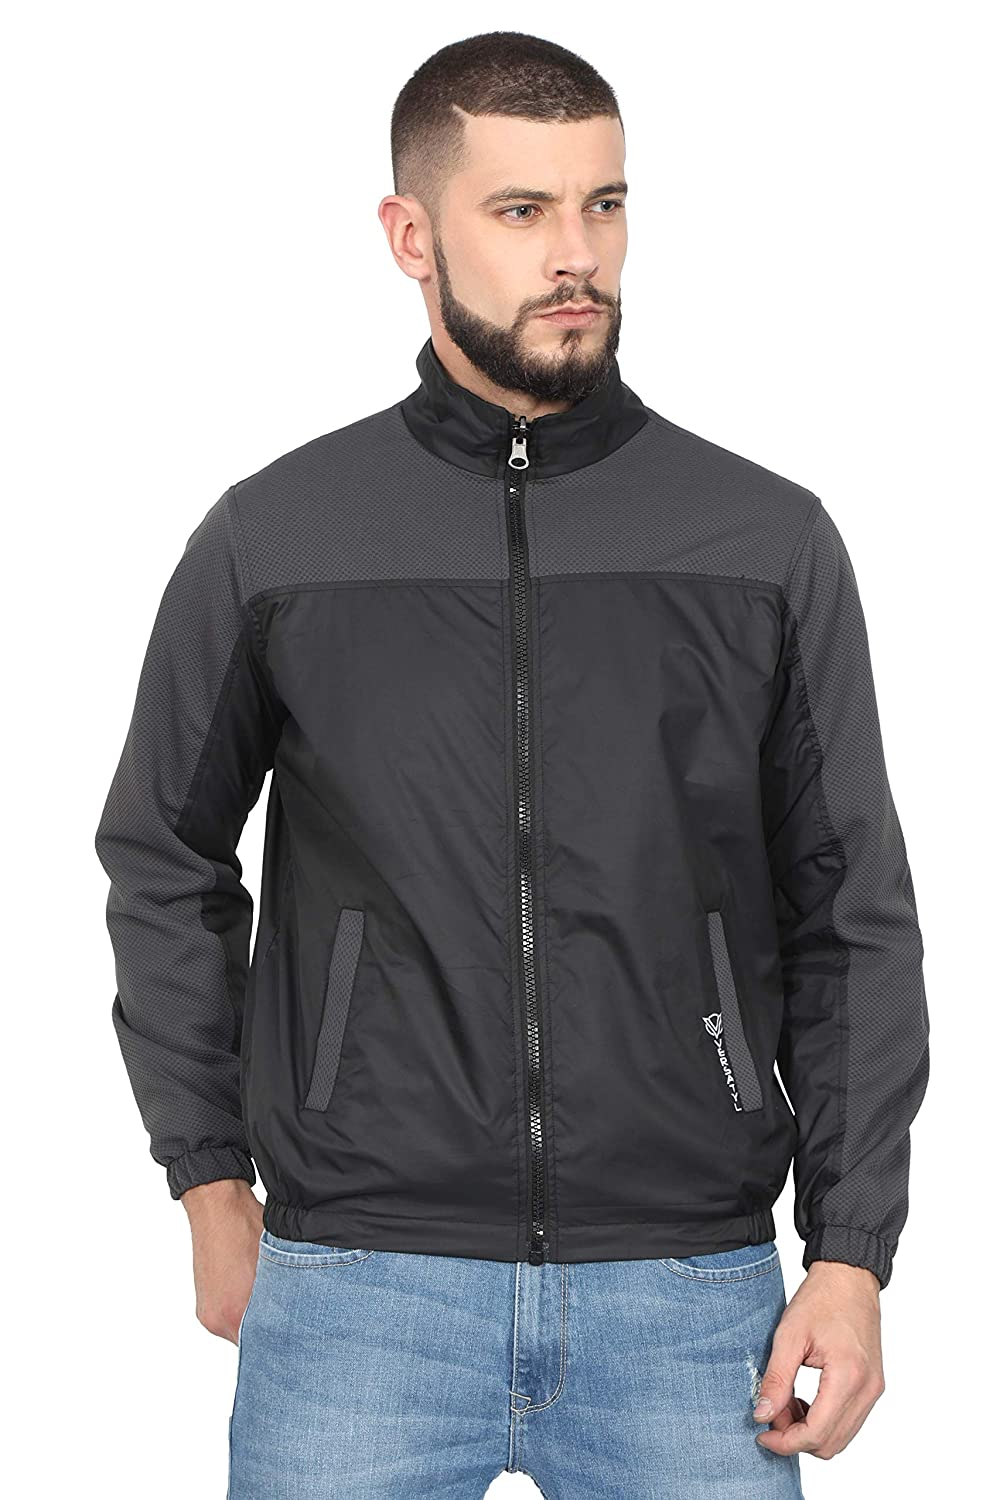 Sports and Casual Track Jacket for Men & Women